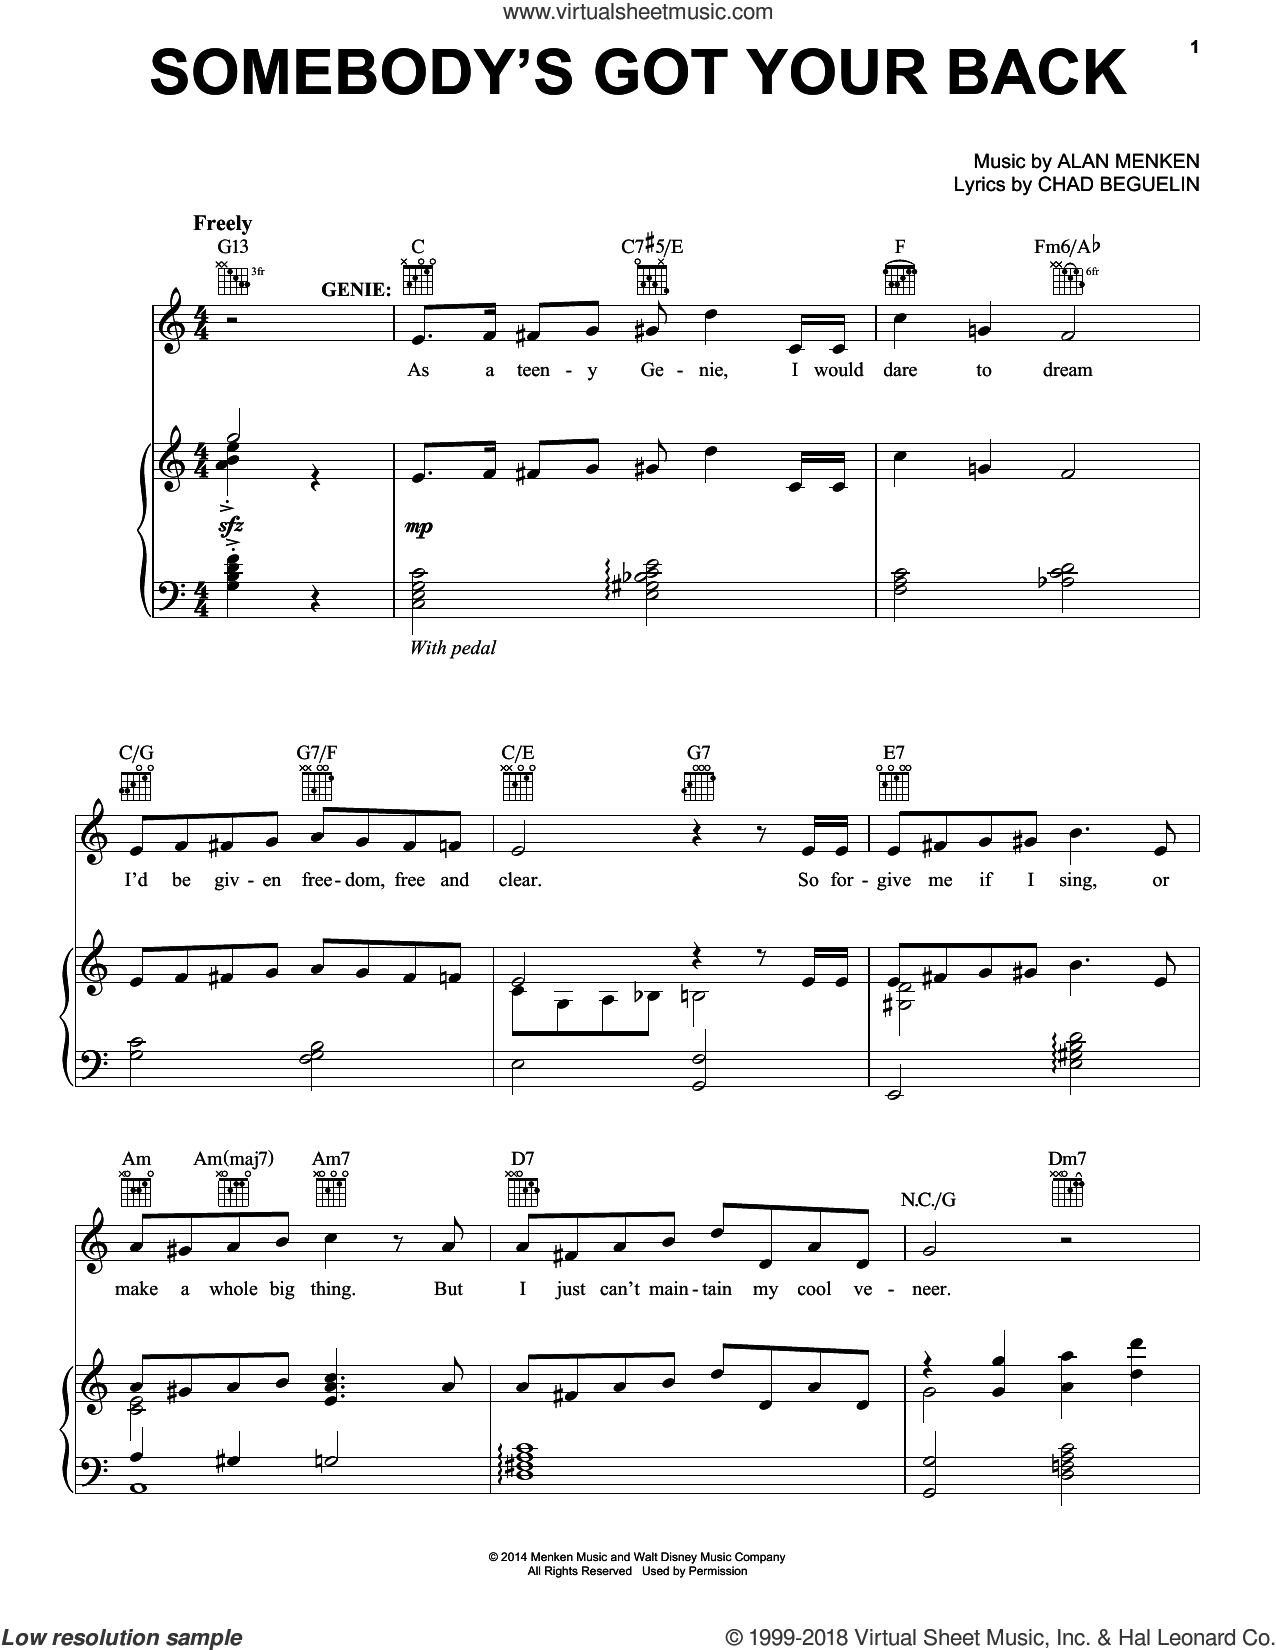 Somebody's Got Your Back sheet music for voice, piano or guitar by Alan Menken and Chad Beguelin, intermediate skill level